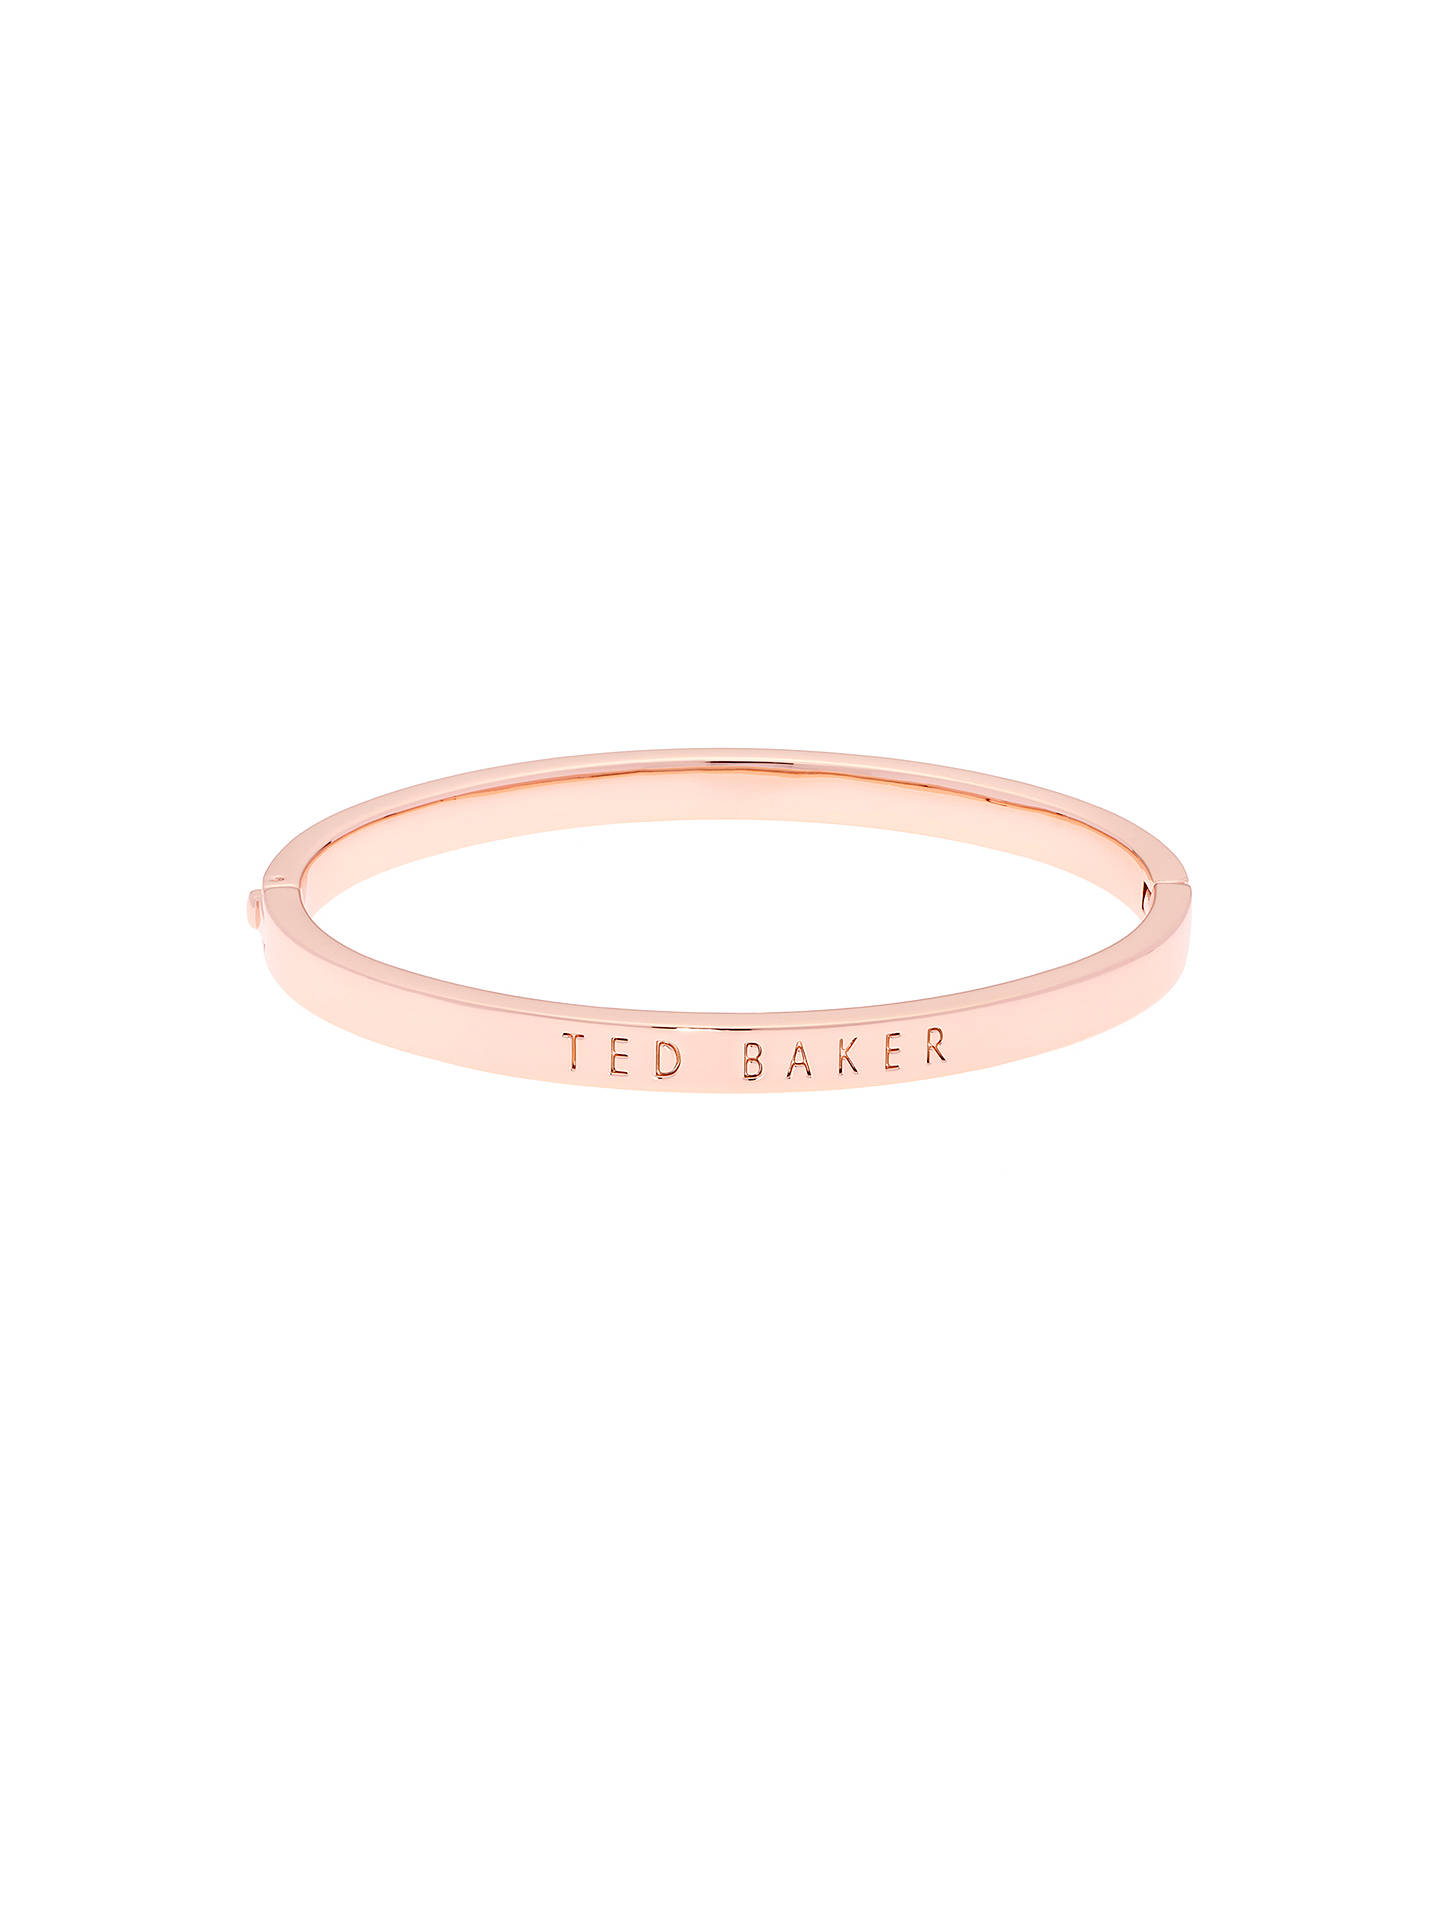 Ted Baker Clemina Hinged Bangle Rose Gold Online At Johnlewis